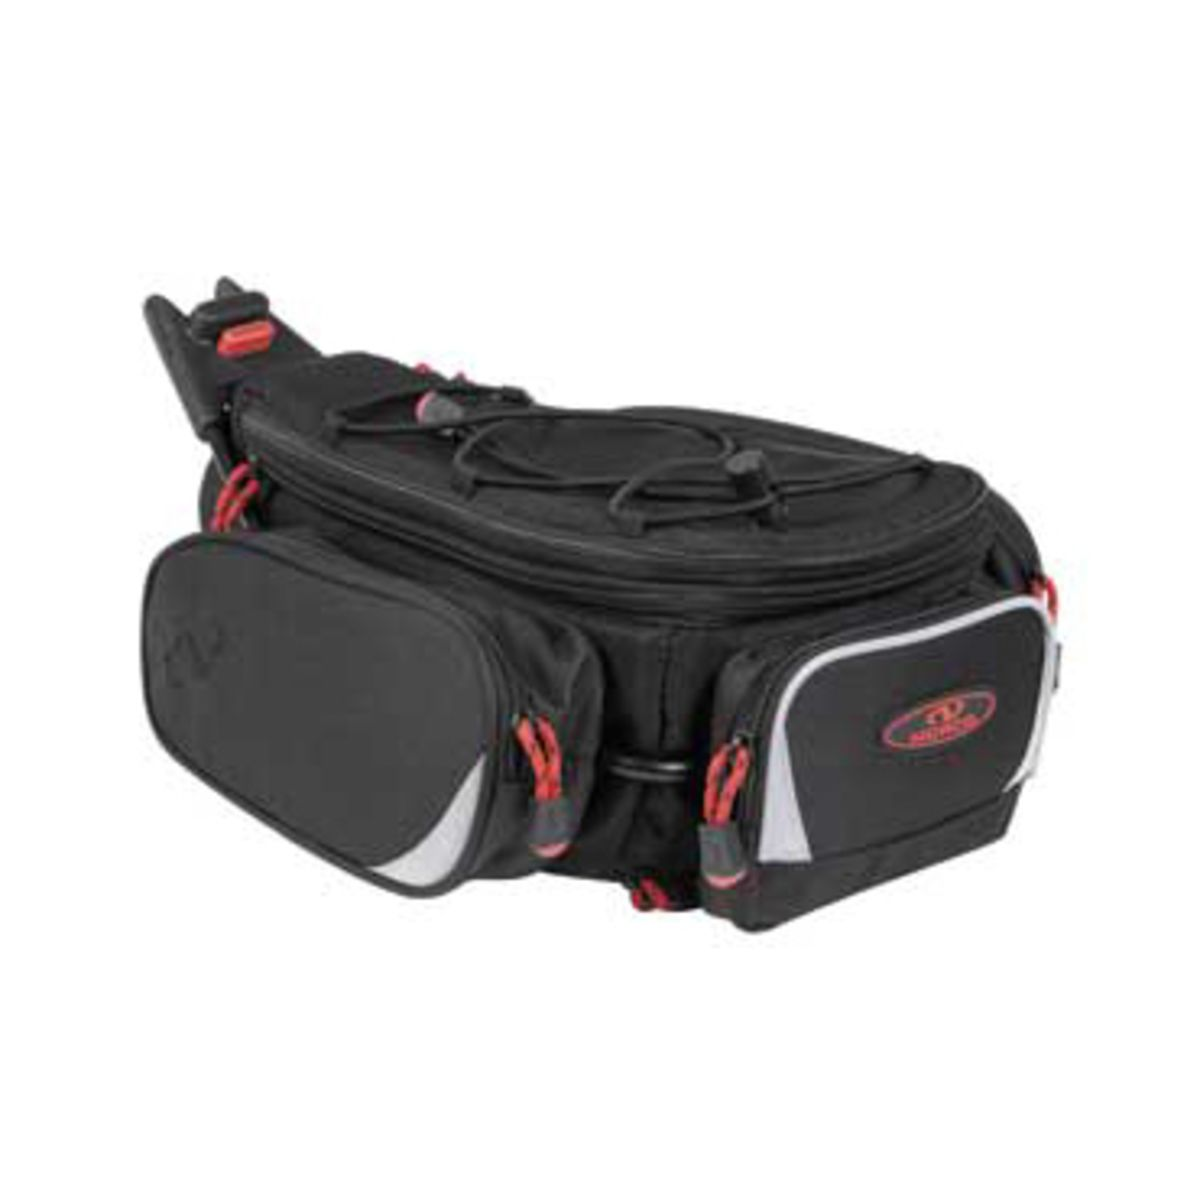 CARSON seat post bag incl. KLICKfix adapter